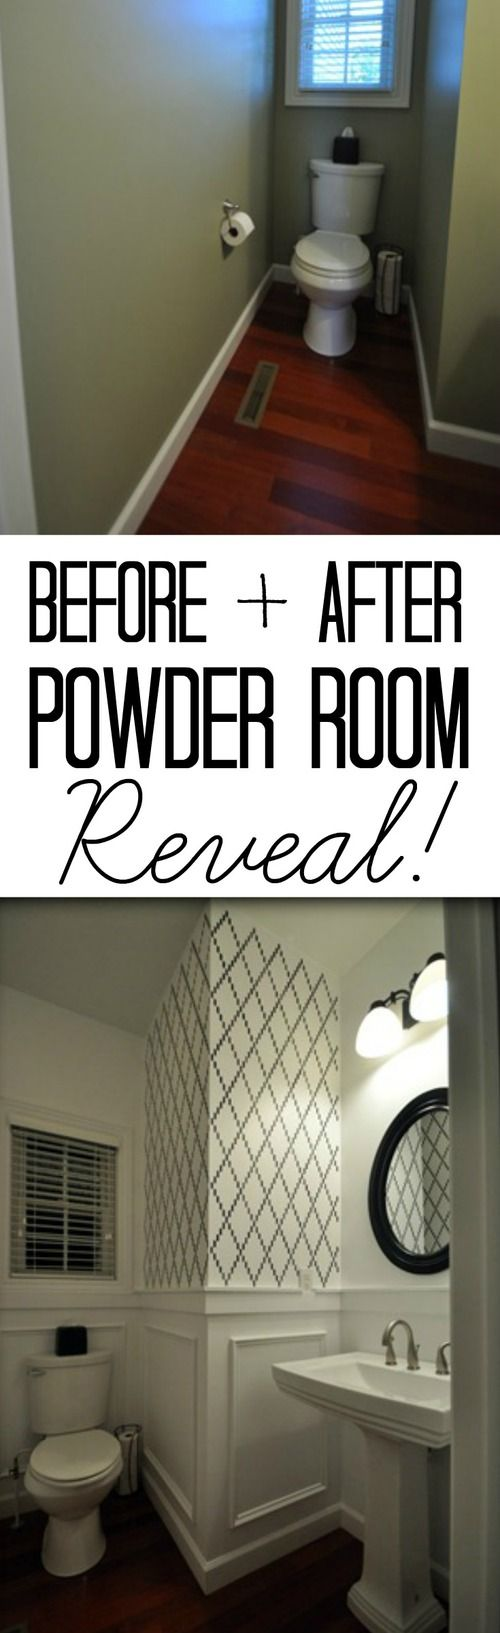 226 best fabric and wallpaper images on pinterest fabric powder room reveal